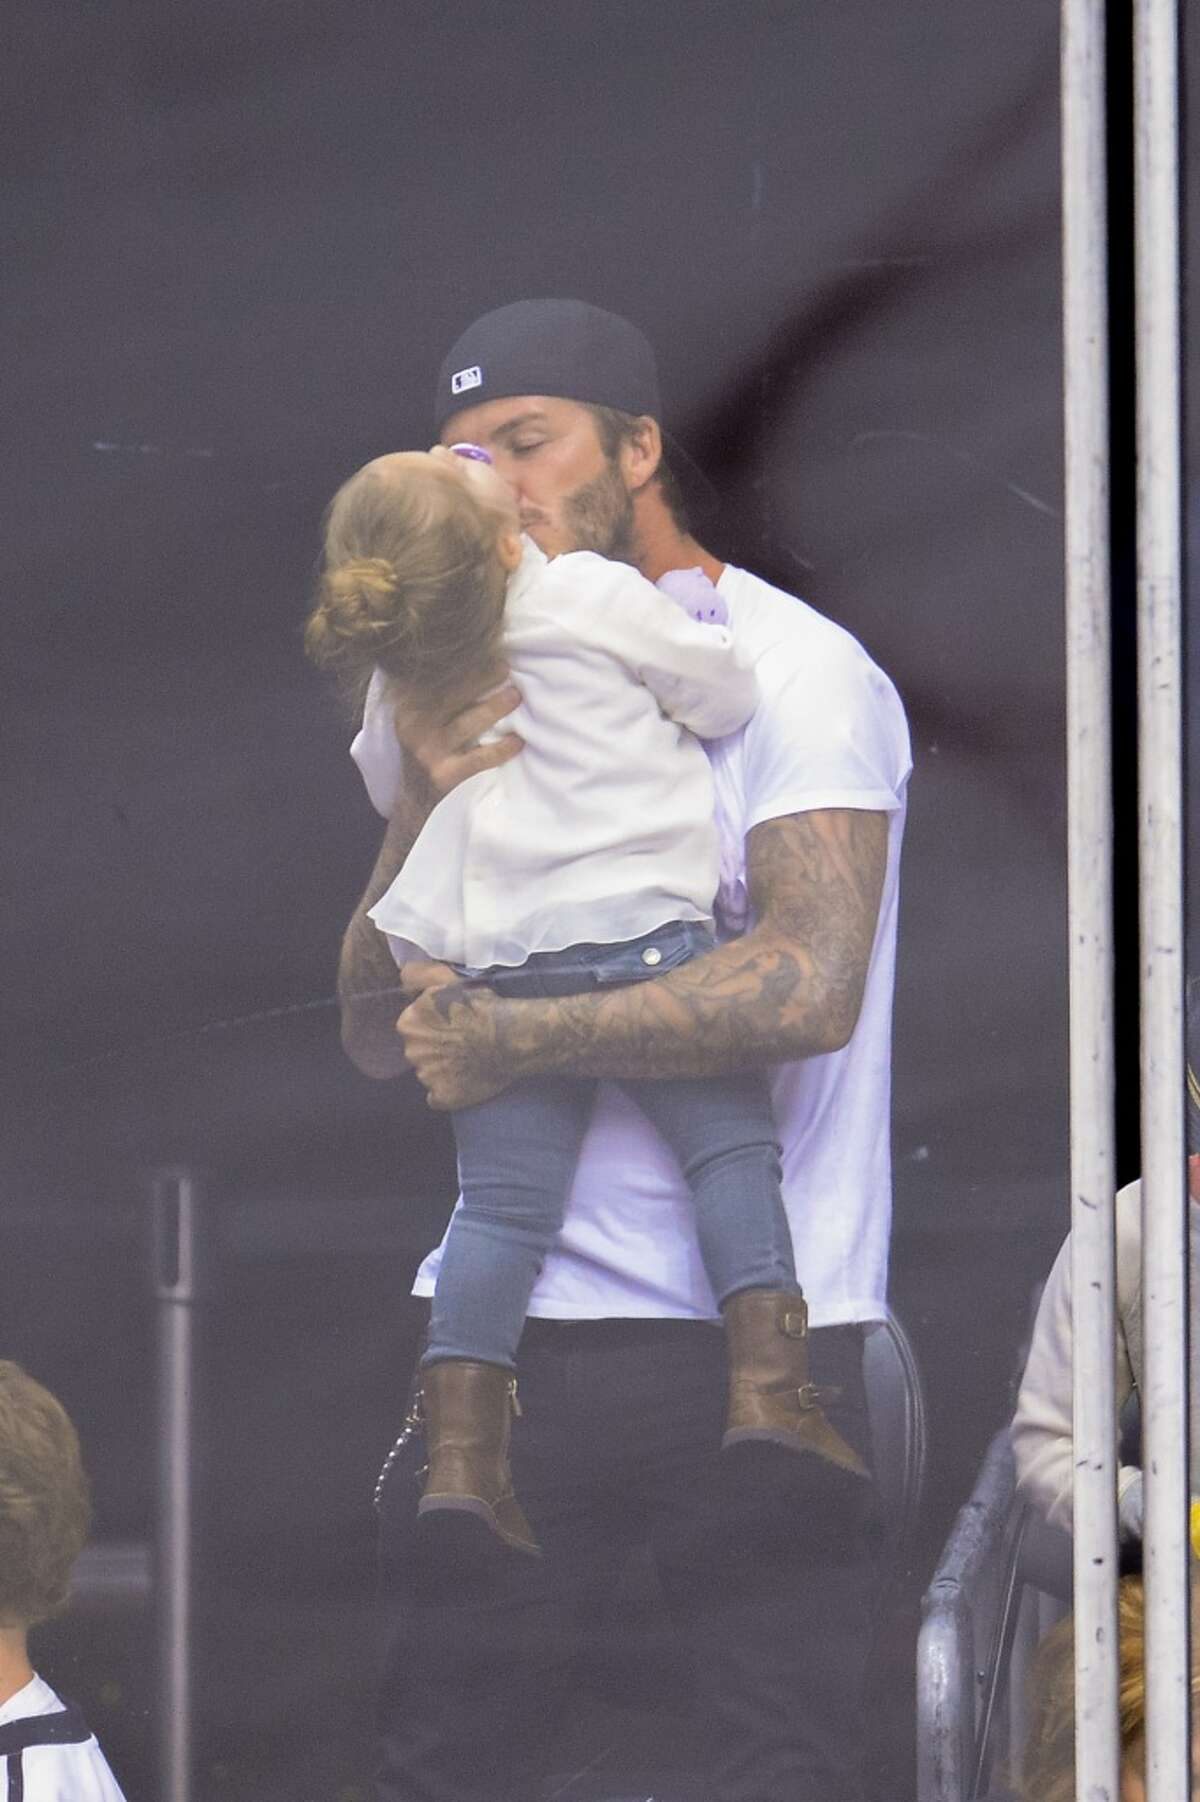 Harper Beckham and David Beckham have some quality daddy/daughter time at an L.A. Kings hockey game. Beckham is also dad to three sons with wife Victoria Beckham.